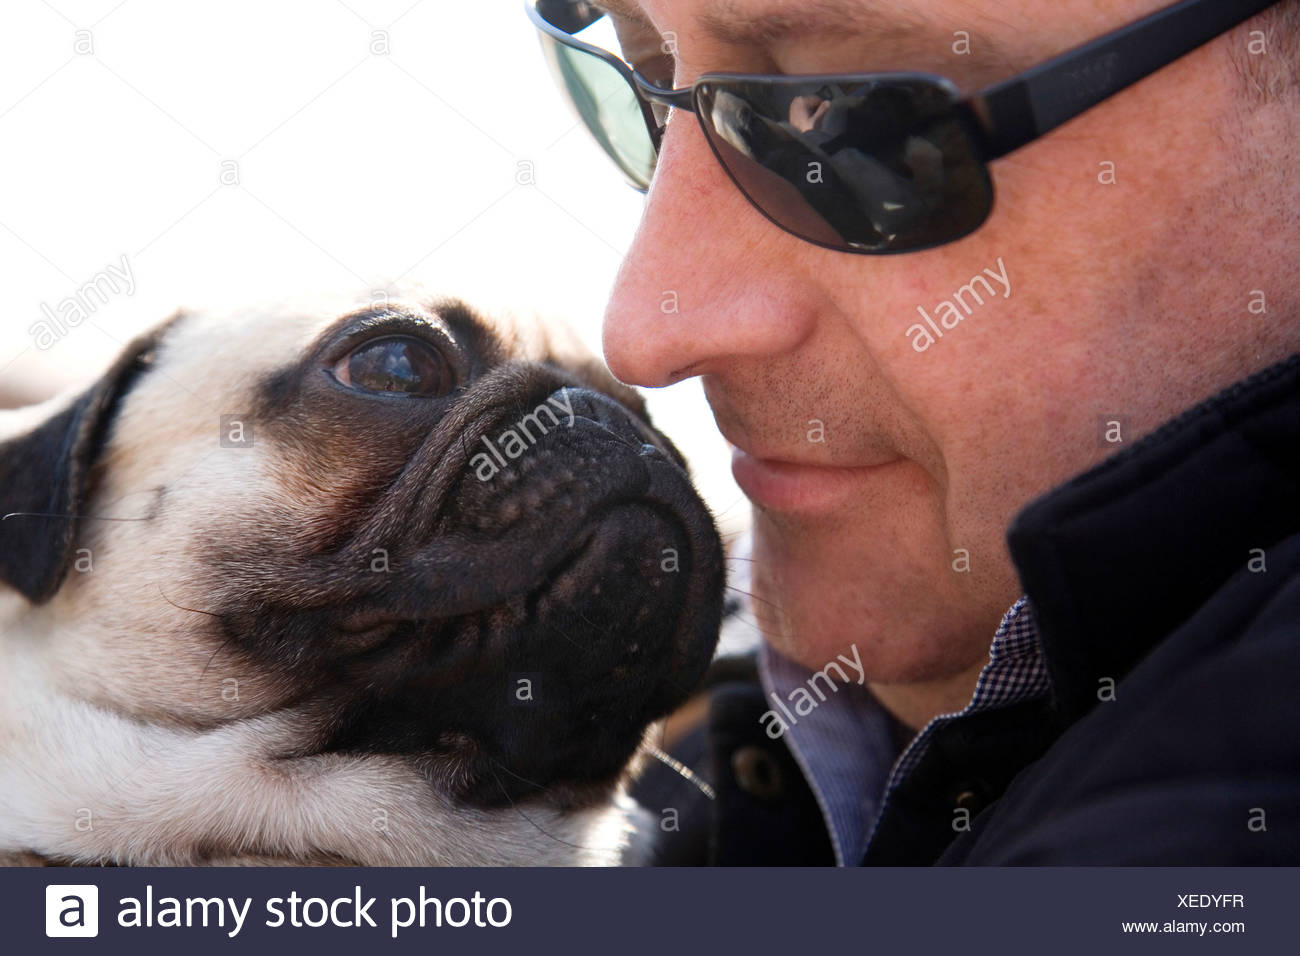 Portrait of a man and a pug looking at each other, nose and snout nearly touching - Stock Image